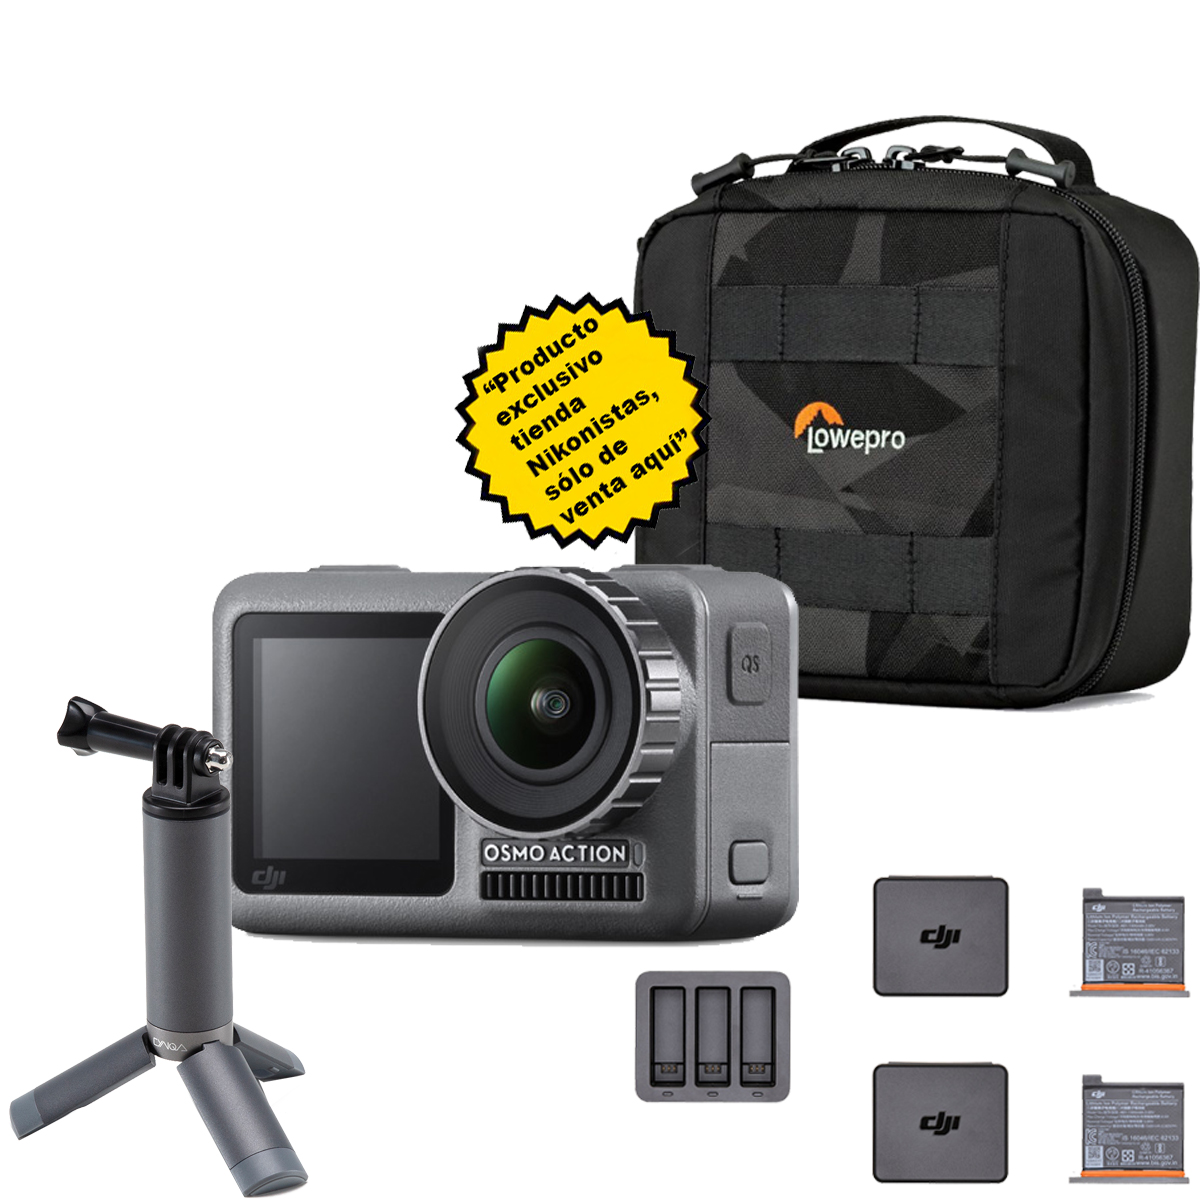 Mega-Kit Osmo Action + Sistema de carga inteligente DJI + Mini tripode + Funda Lowepro CS60